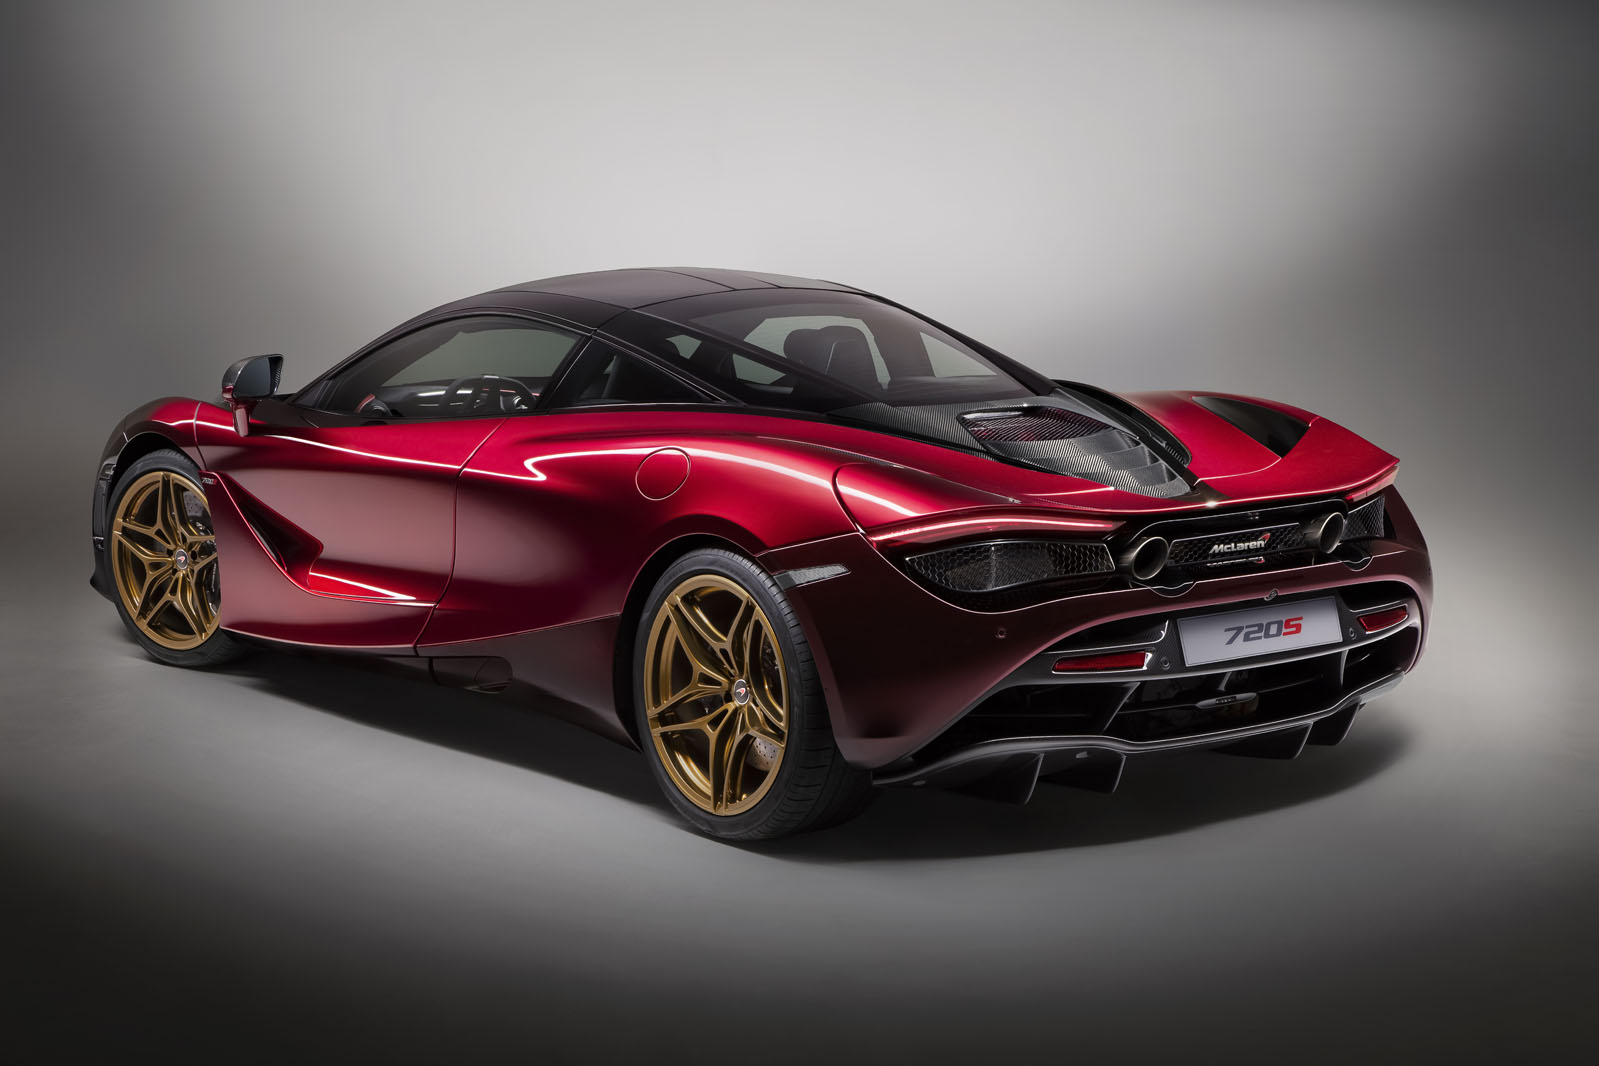 212mph McLaren 720S officially revealed at Geneva Motor Show | Autocar